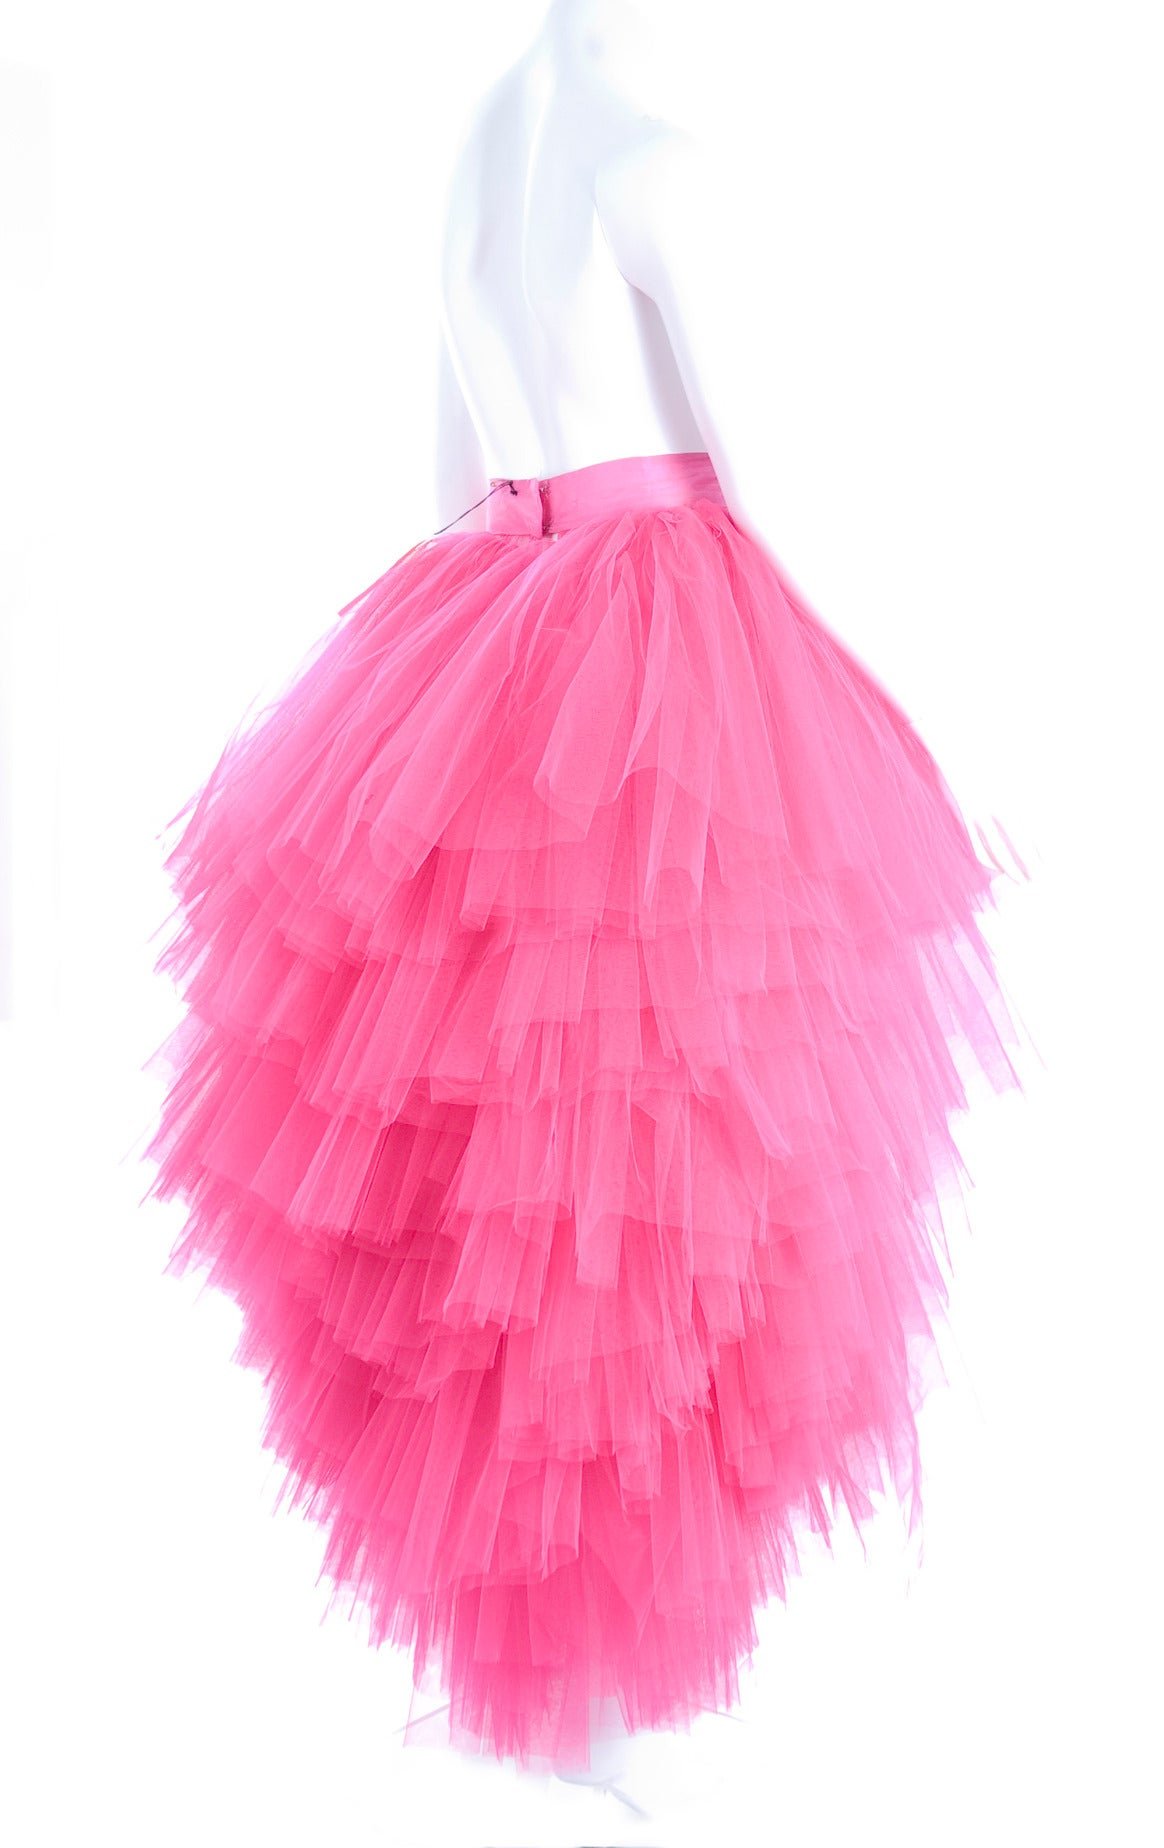 All About Eve Couture by Talbot Runhof Tulle Skirt 4